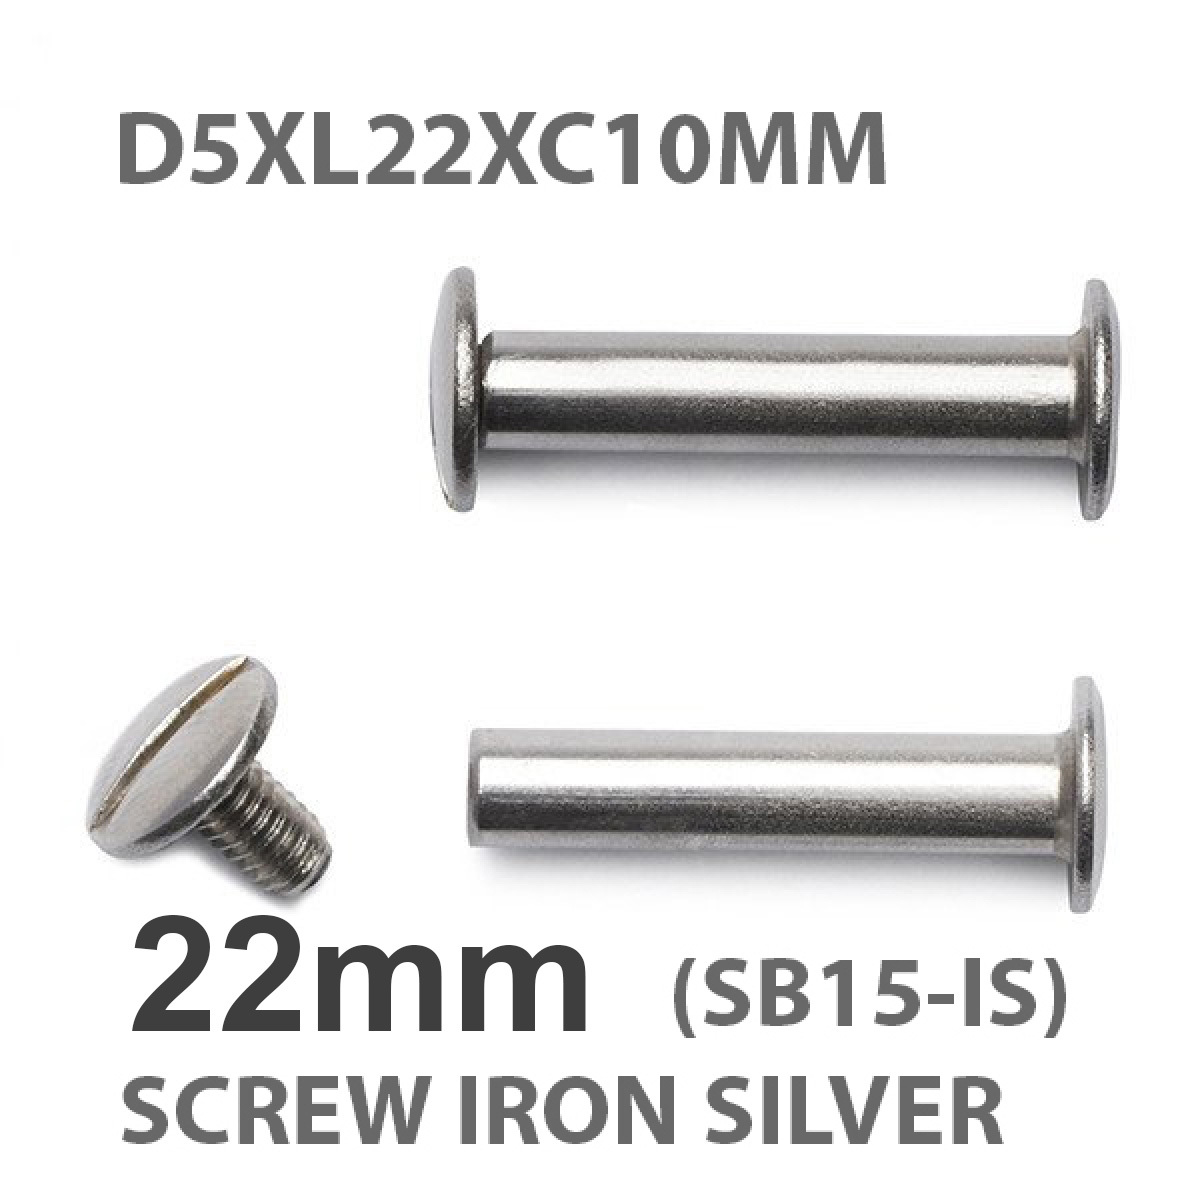 22mm screw silver.jpeg